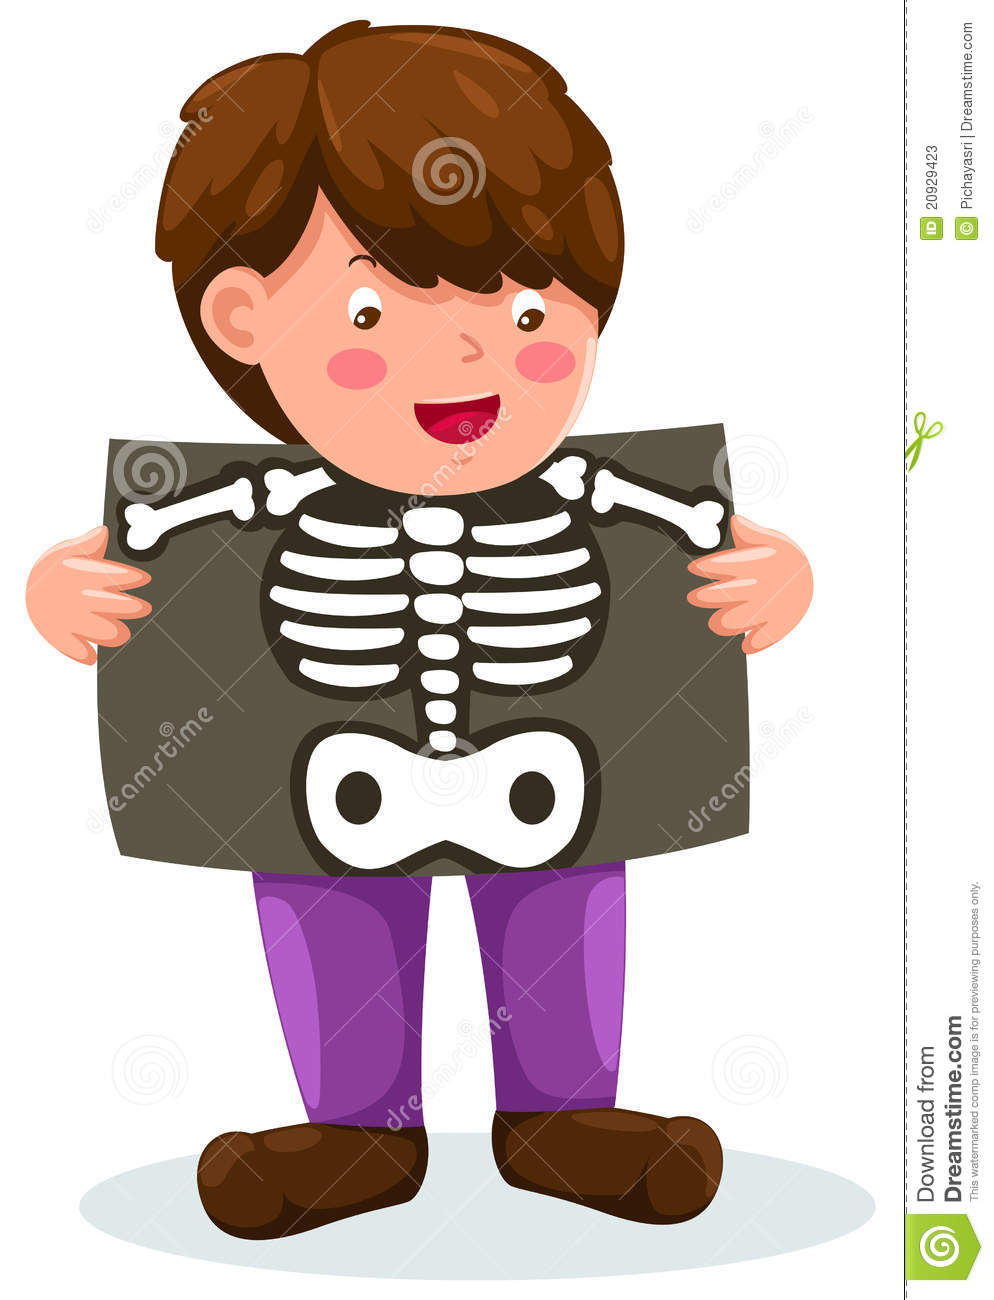 Xray clipart for kids image freeuse download Xray Clipart & Look At Clip Art Images - ClipartLook image freeuse download